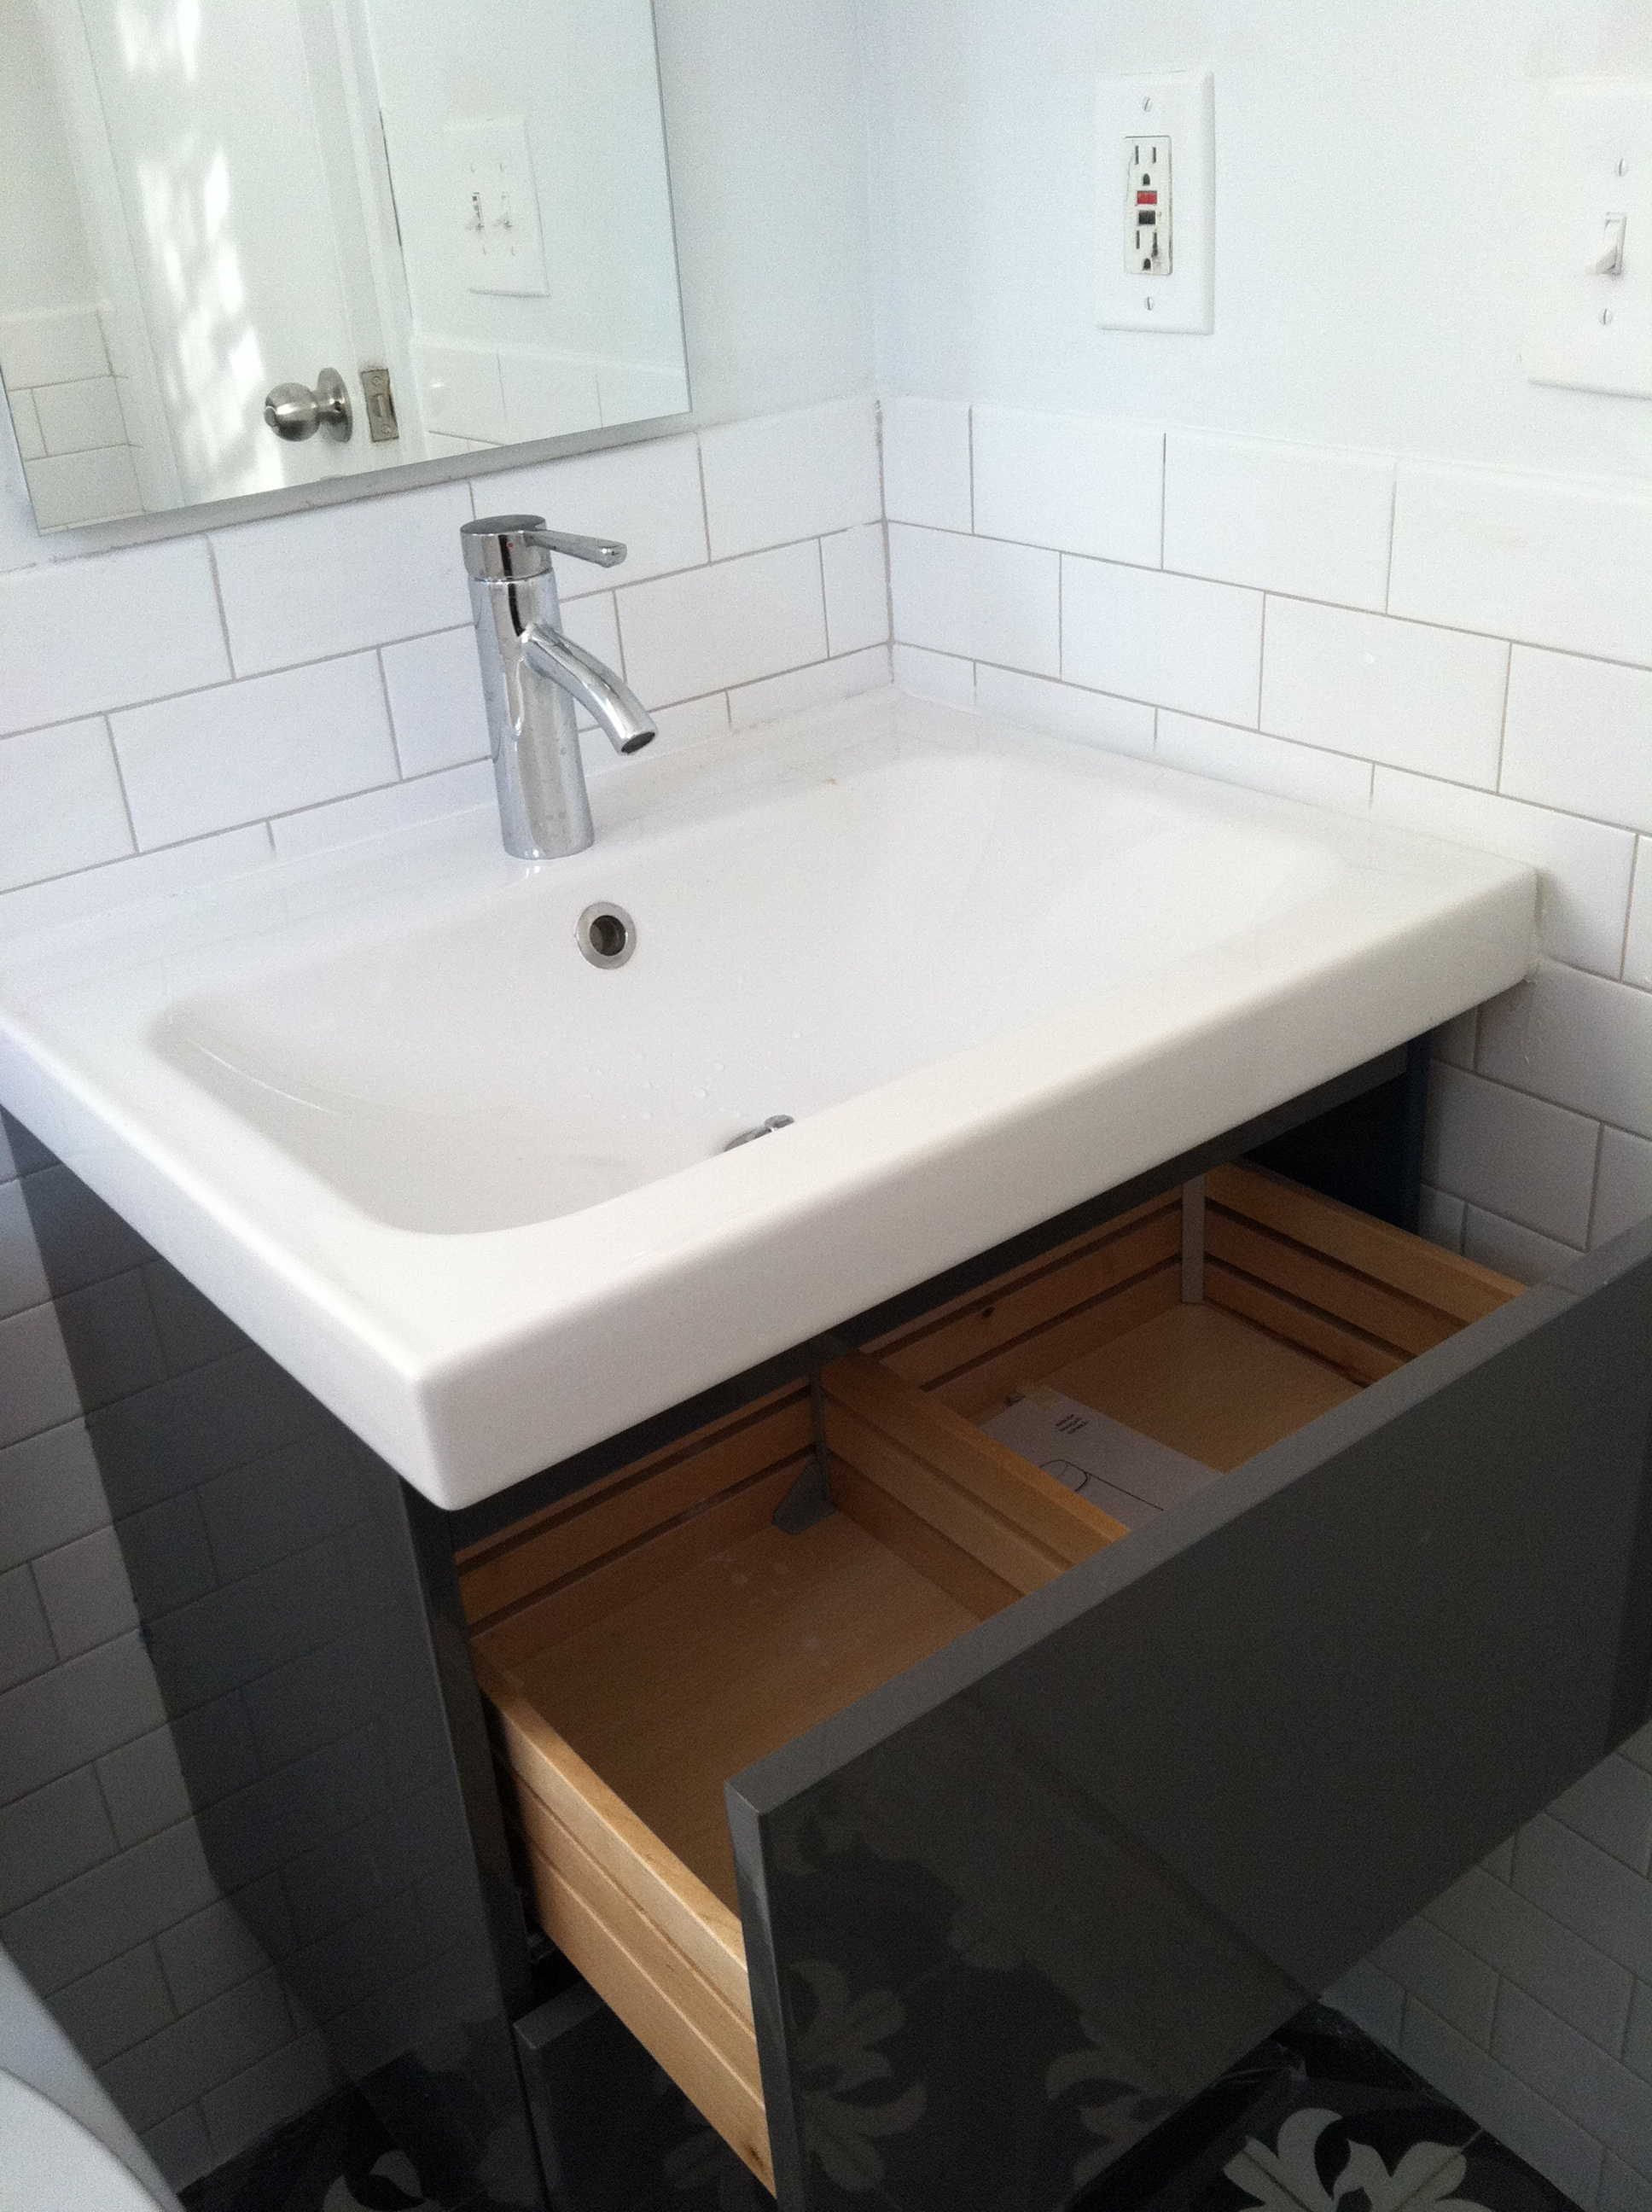 In a tiny bathroom you have to have storage & got the vanity | Loisaida Nest